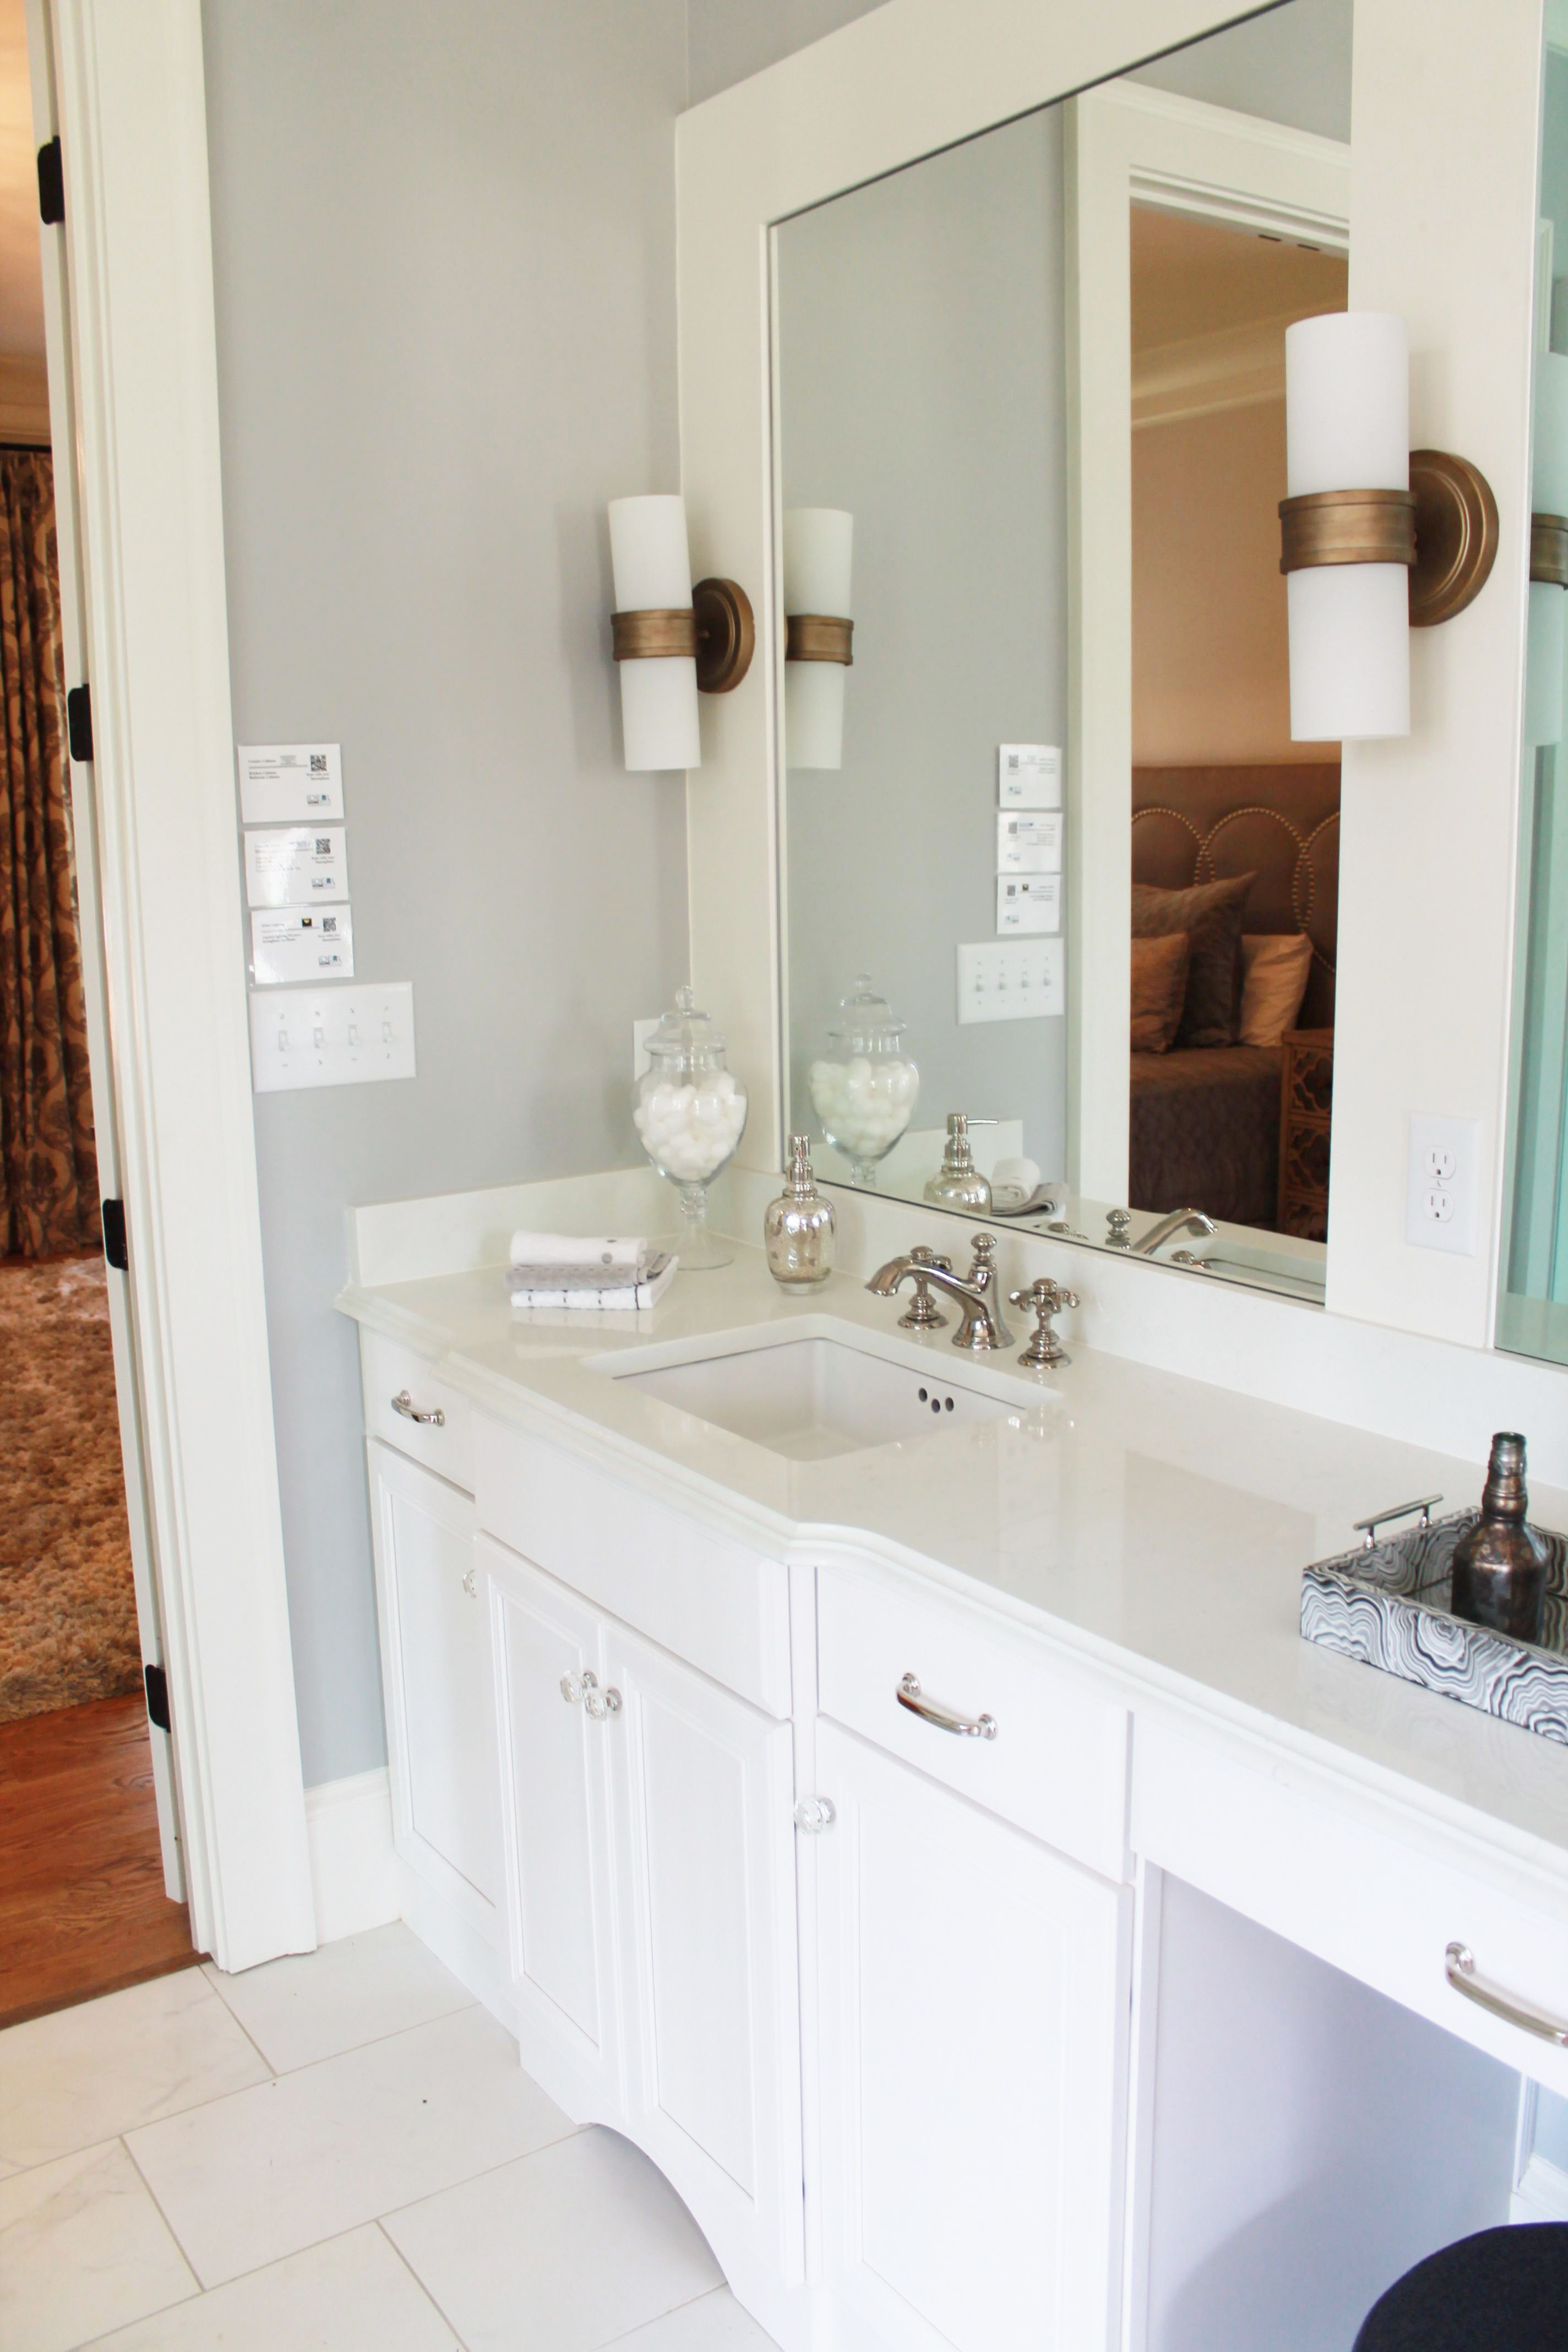 Ariel Silestone Quartz Bathroom Countertops in 2015 GBAHB Ideal Home installed by Surface e of Birmingham